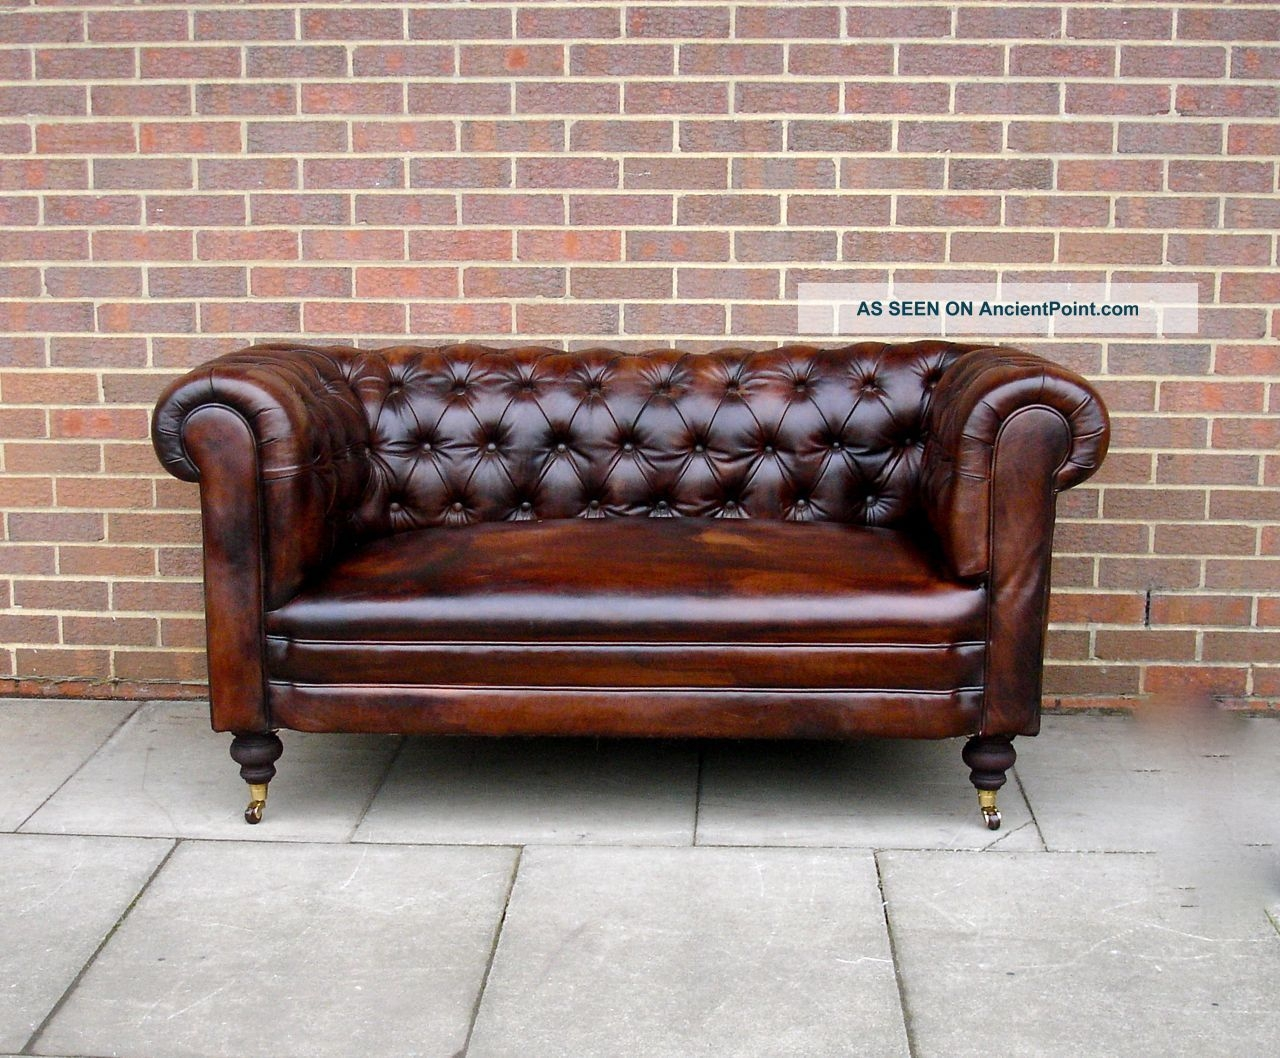 Antique 19thc Leather Chesterfield Sofa Drop Arm Hand Full Pertaining To Antique Sofa Chairs (Image 1 of 15)